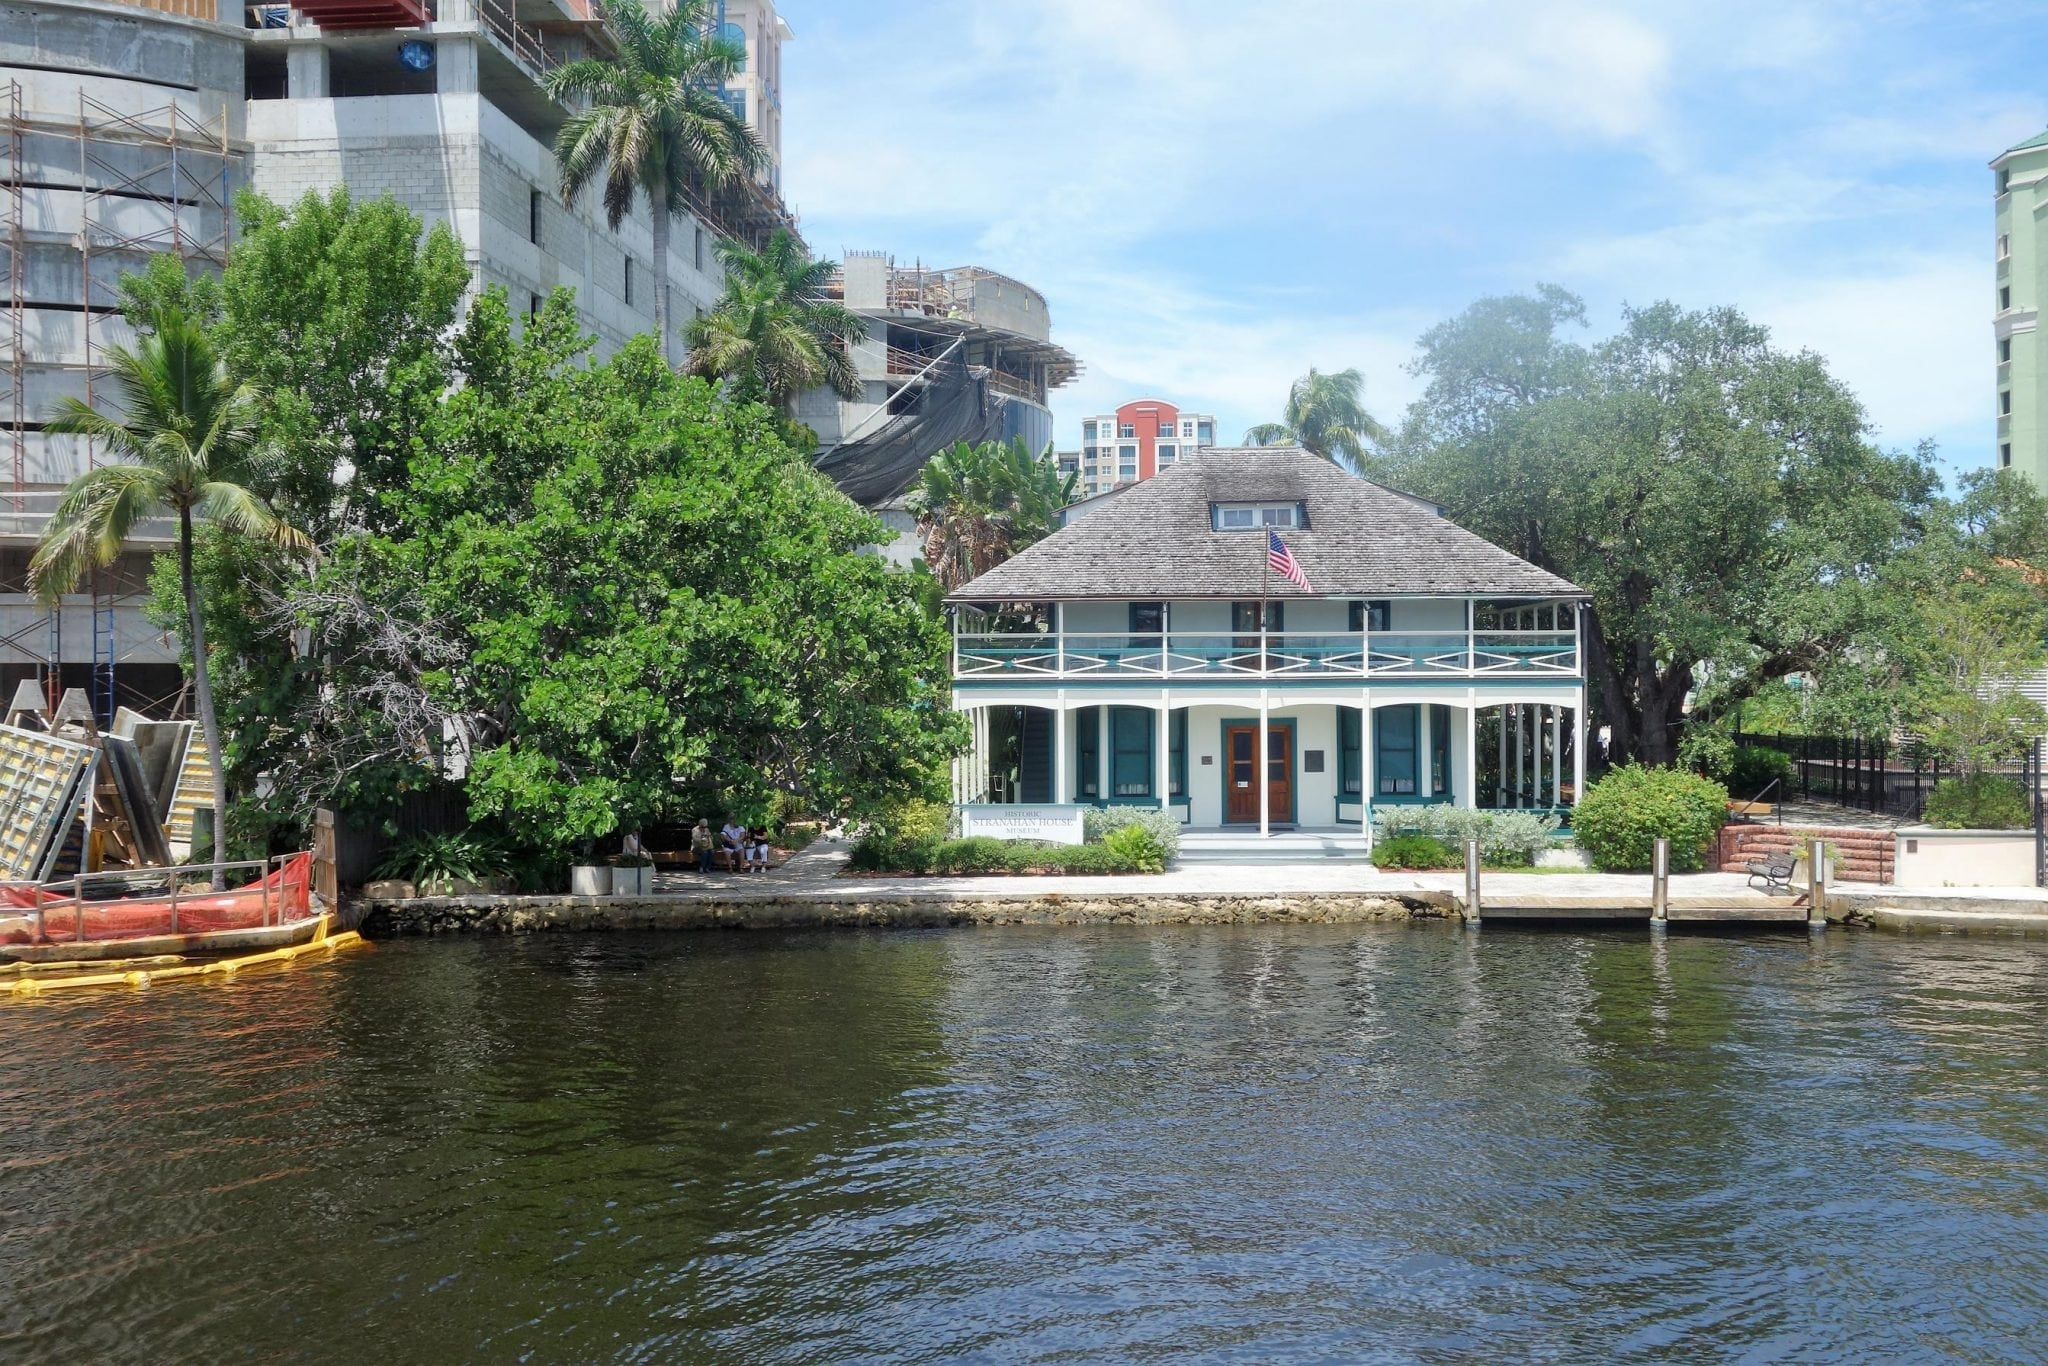 Best Things to Do in Fort Lauderdale on a Cruise